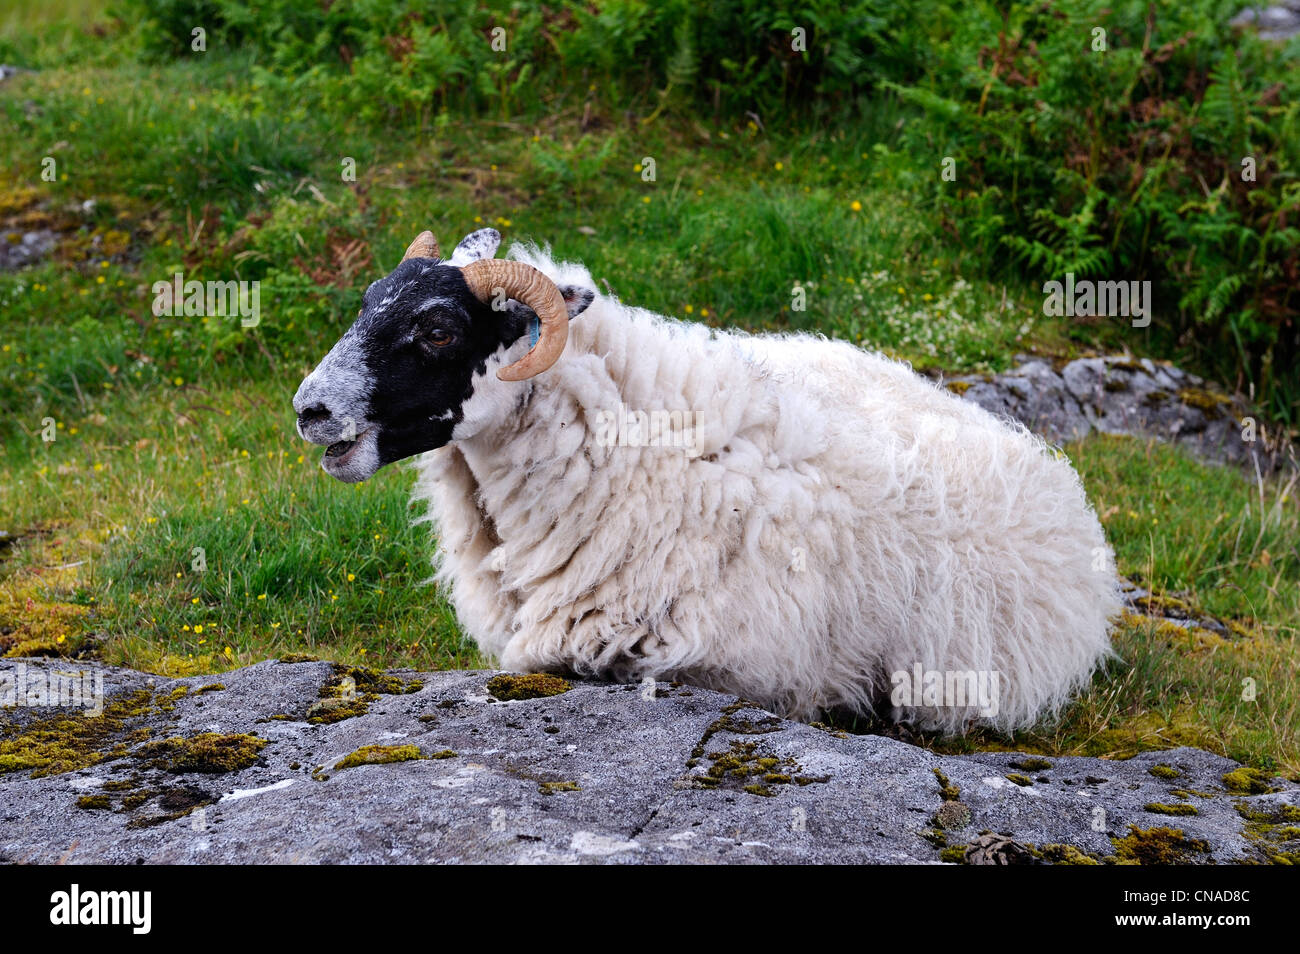 United Kingdom, Scotland, Highland, Inner Hebrides, Isle of Mull, ram Stock Photo